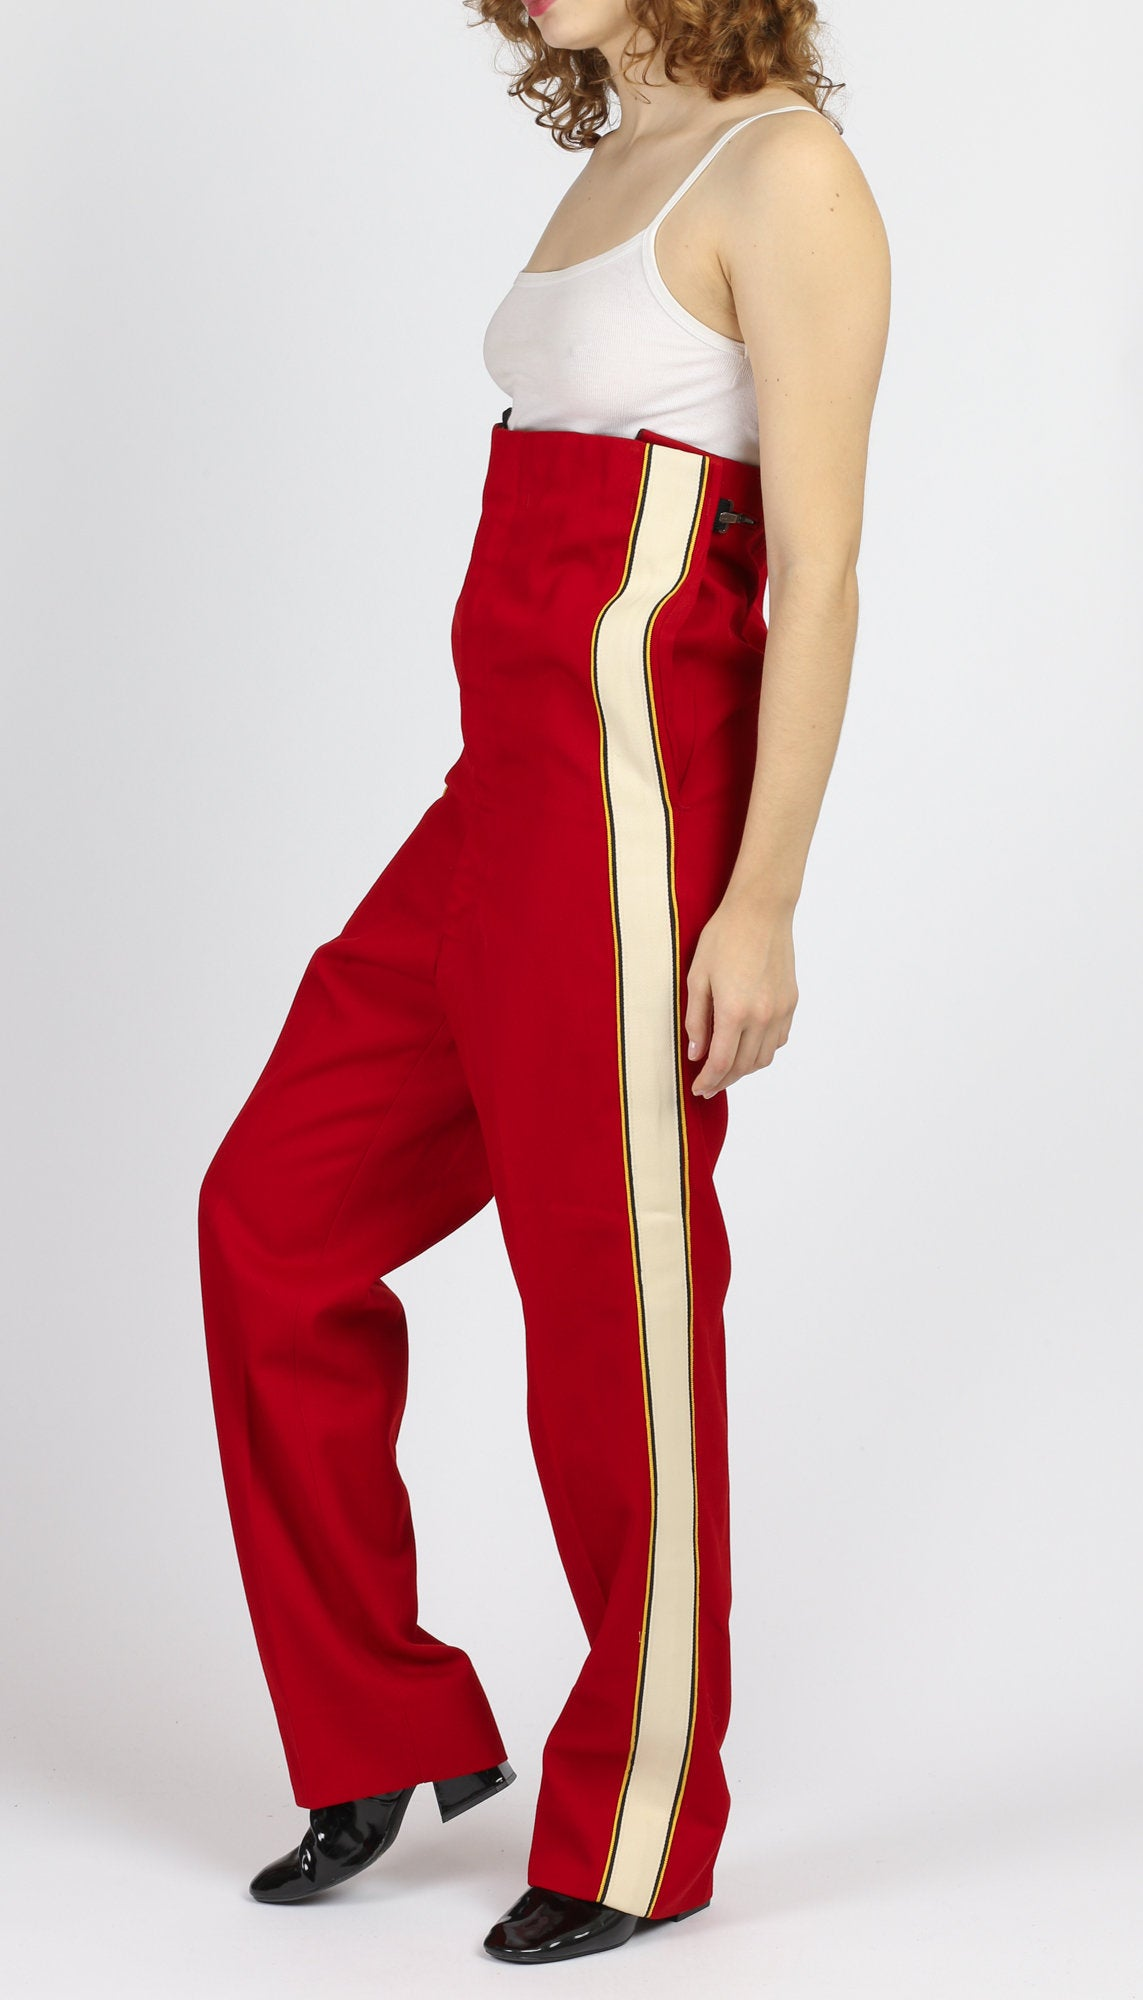 70s Red High Waist Marching Band Pants - Men's Medium